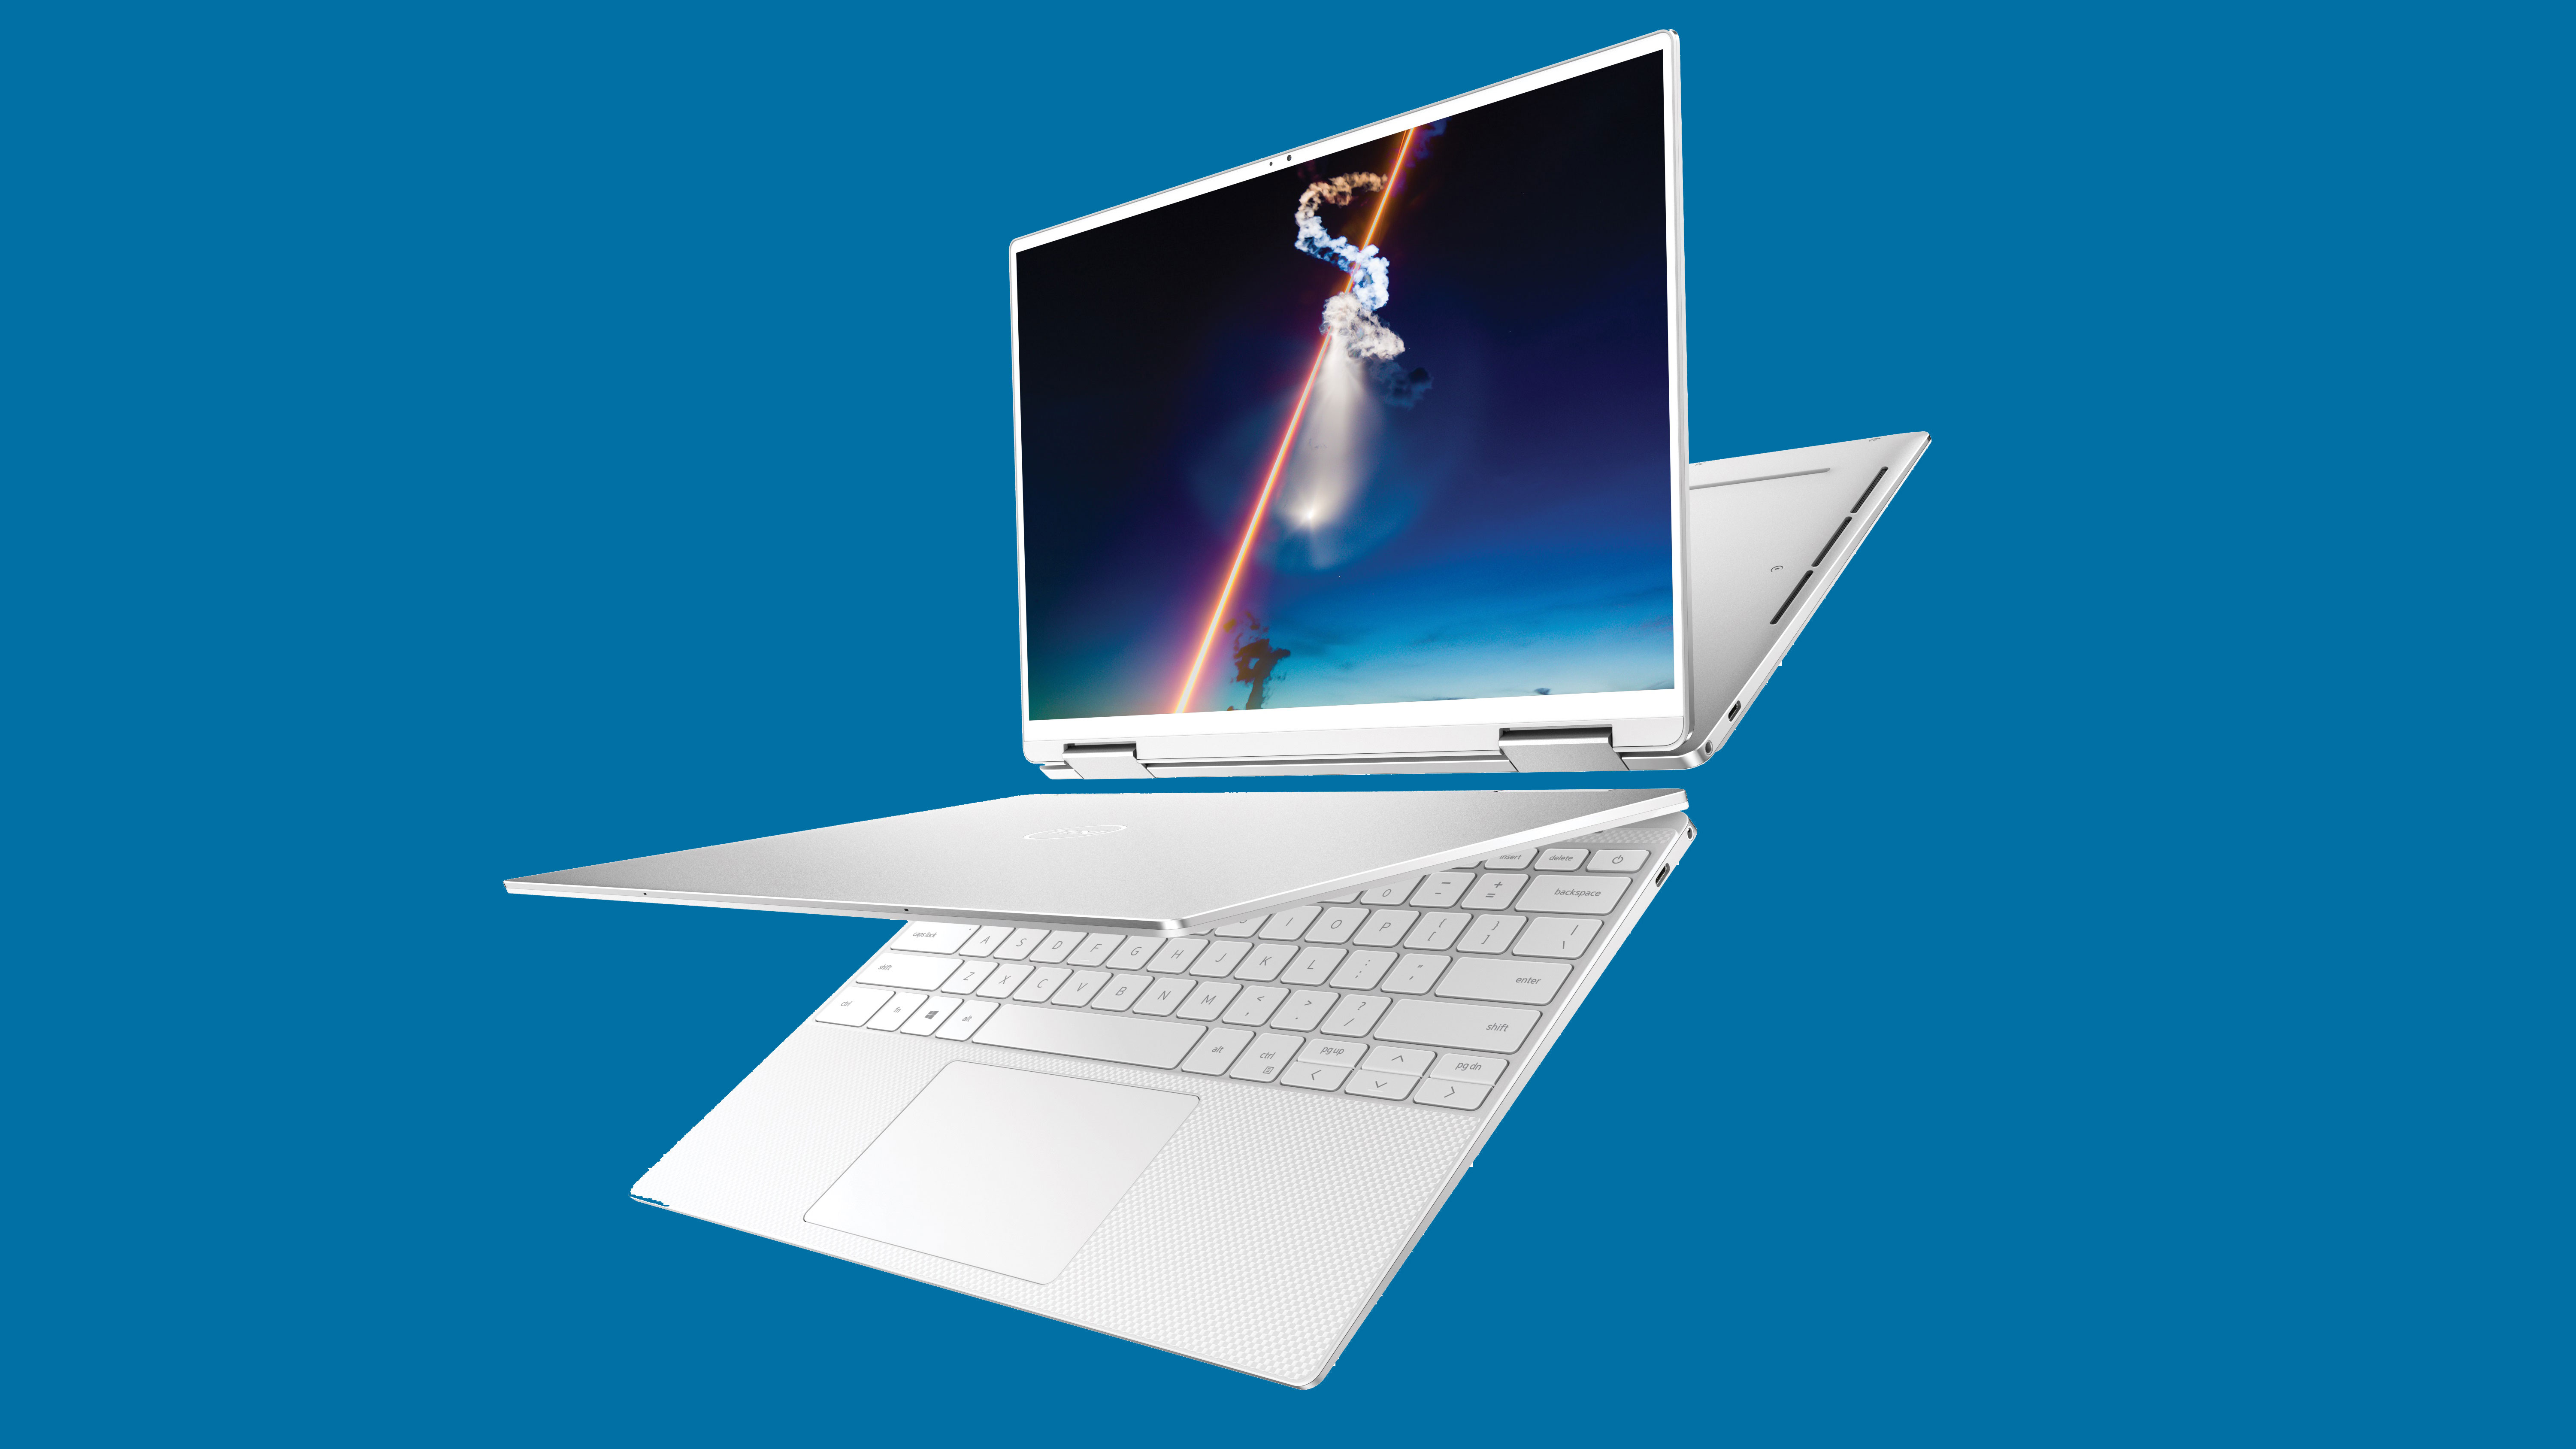 Dell's ANZ Boxing Day deals include 25% off the excellent XPS 13 2-in-1